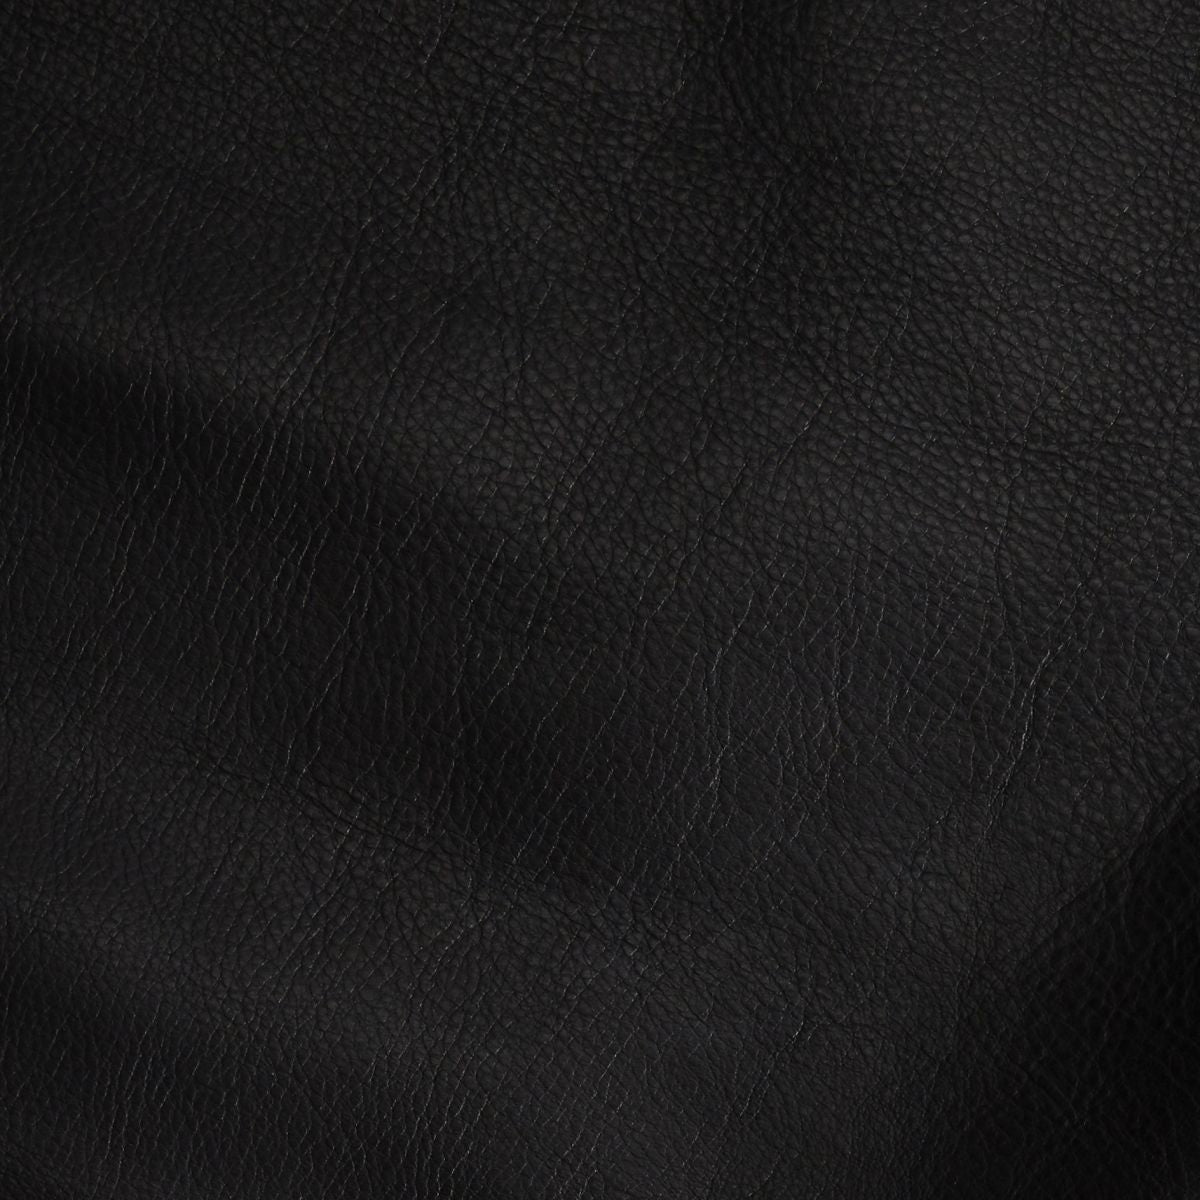 Laredo Floater Grain Black 4-5 oz